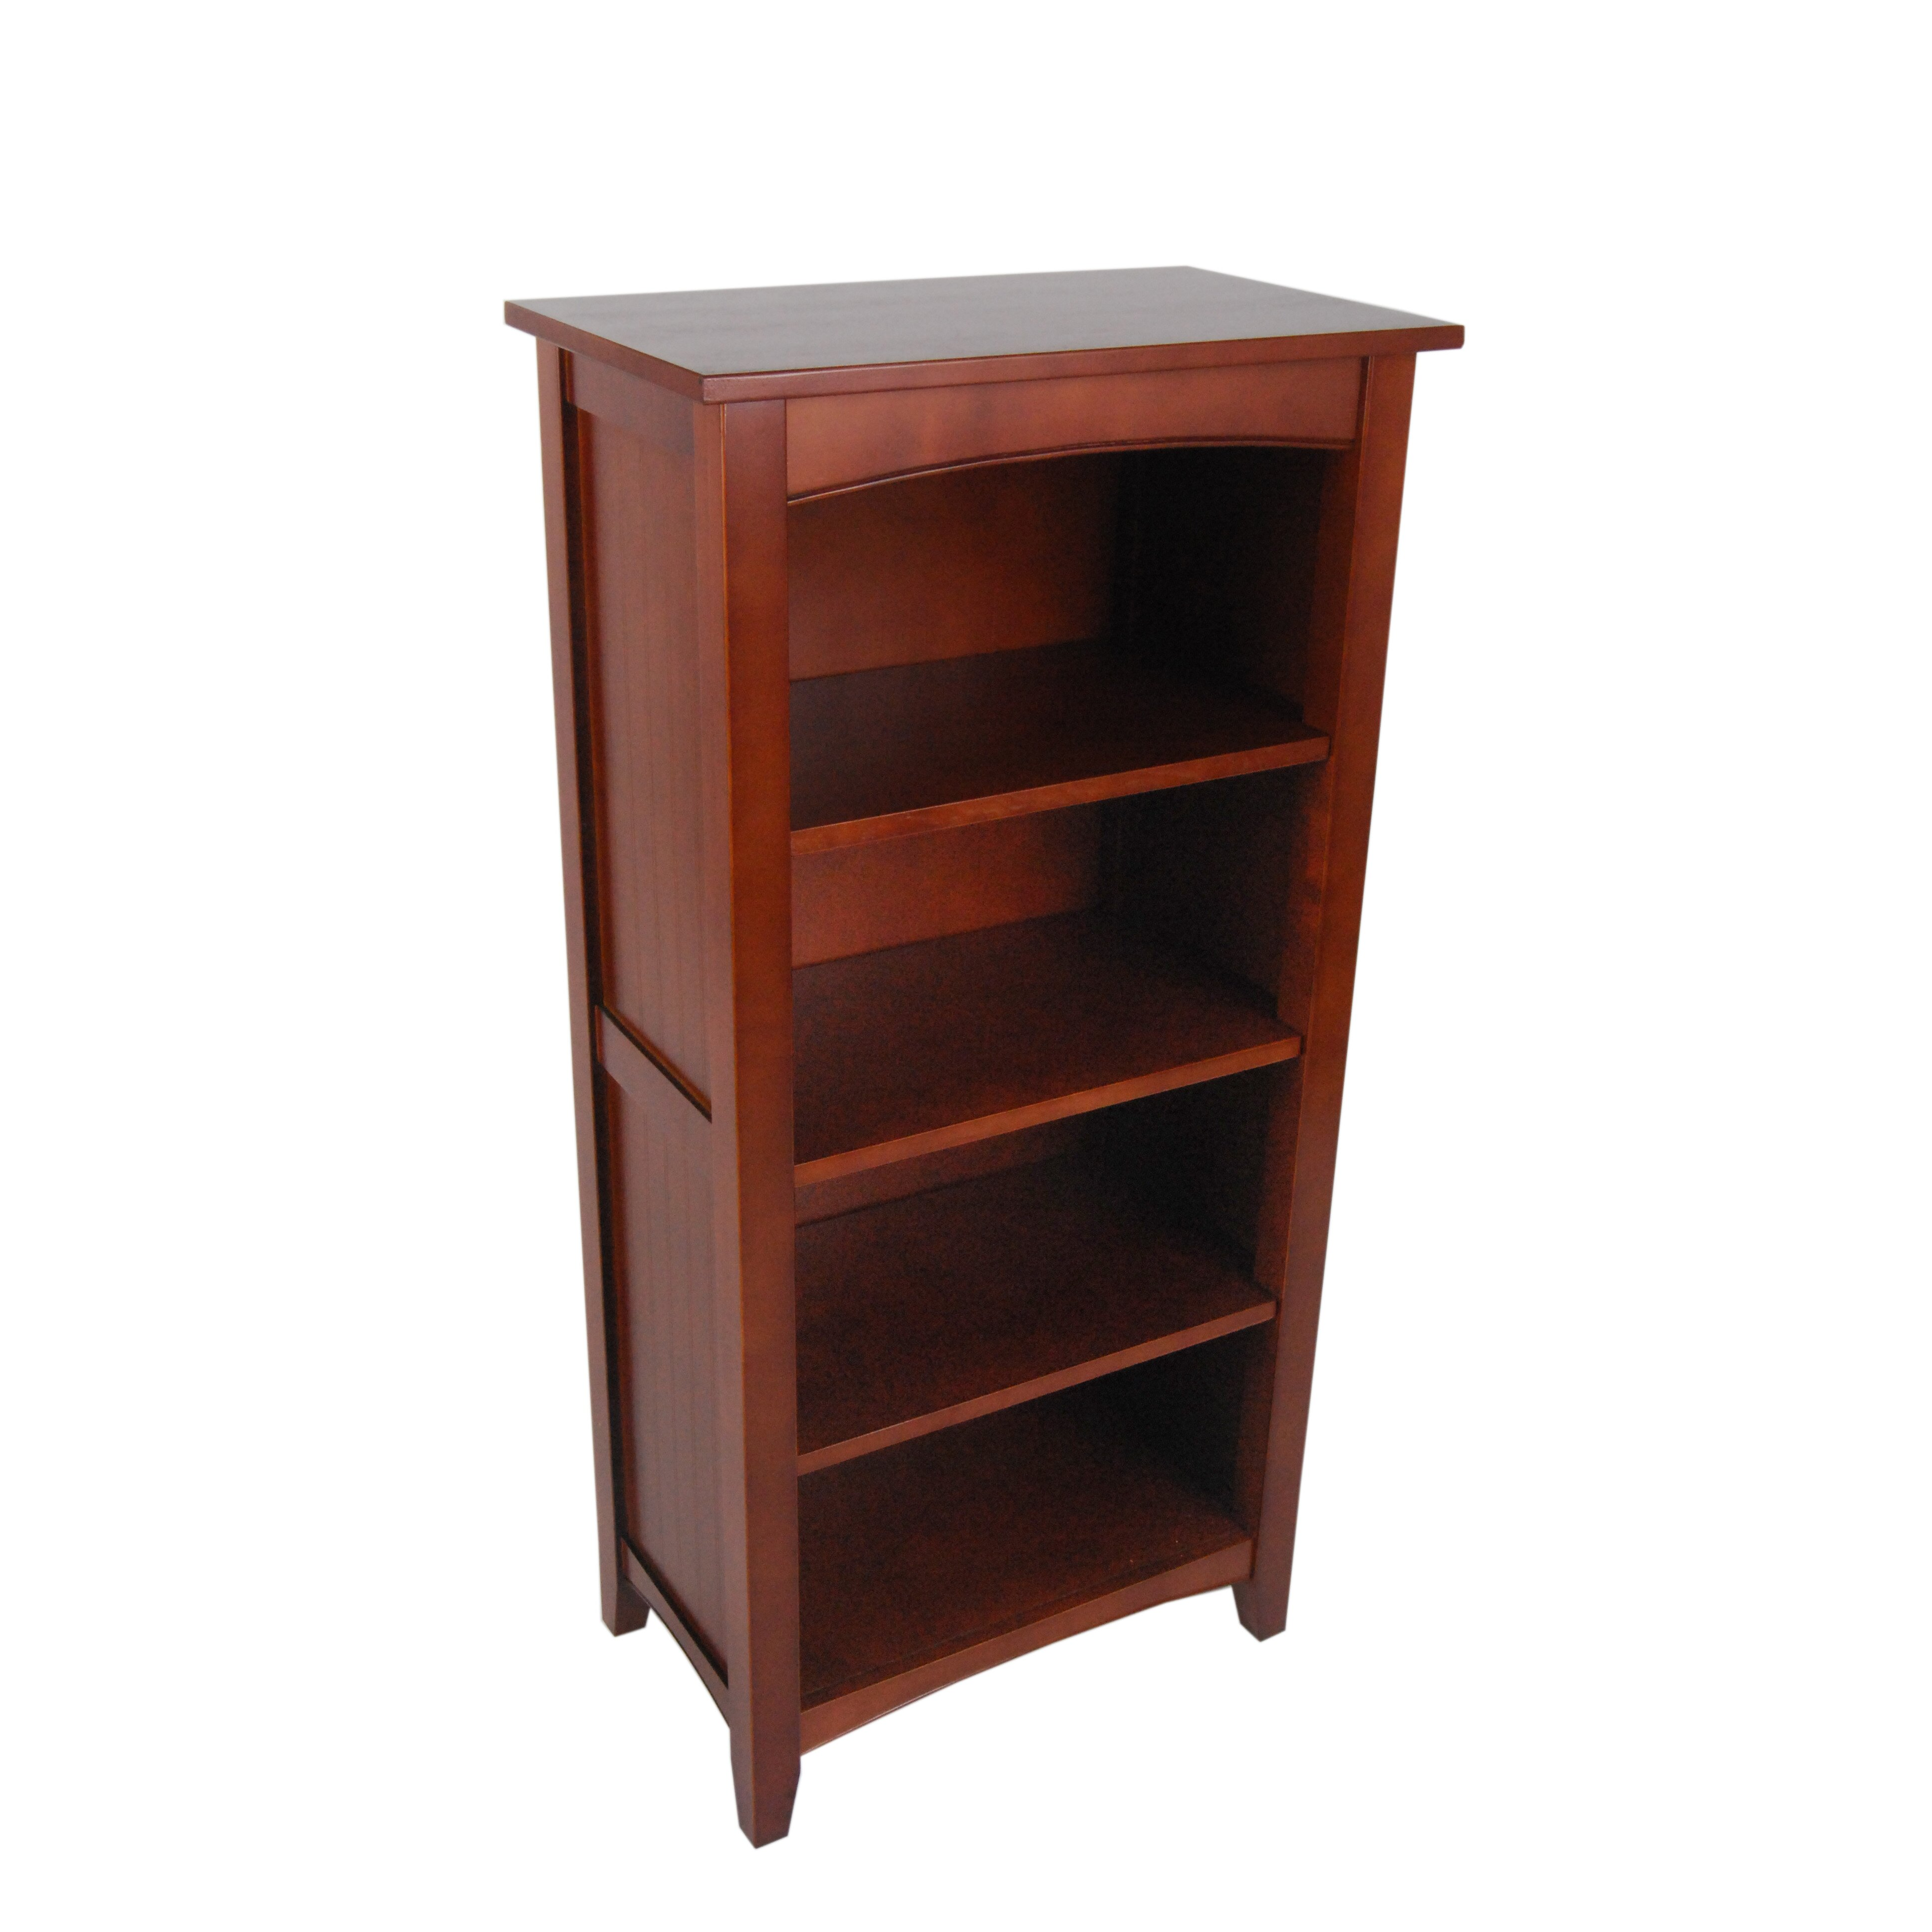 3872x3872 Alcott Hill Bel Air 48 Standard Bookcase   Reviews Wayfair Supply  img  733627 Reliable. Reliable How To Clean Cherry Wood Furniture   htpcworks com   Awe